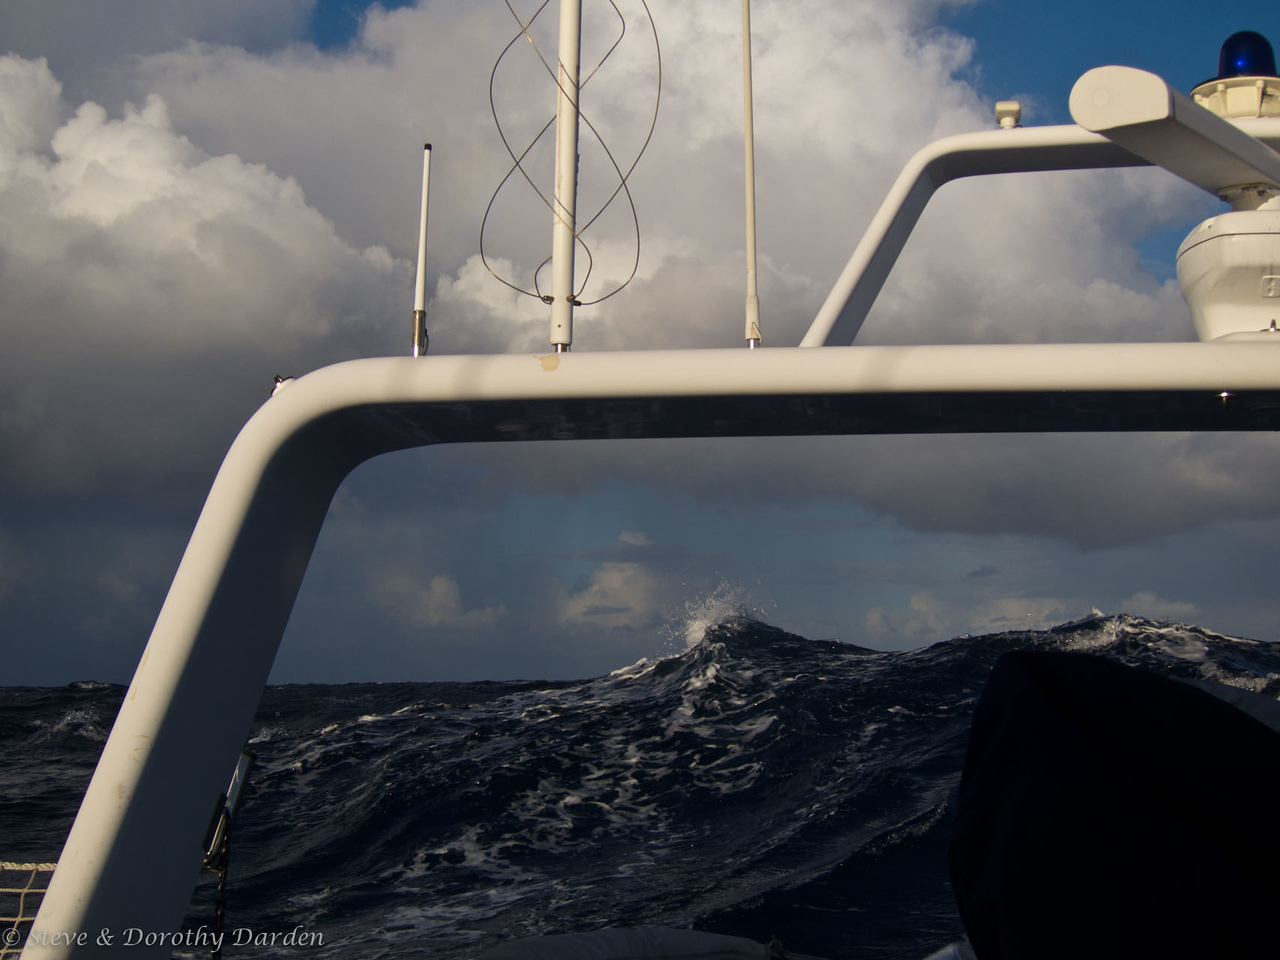 Stormy seas off our starboard quarter